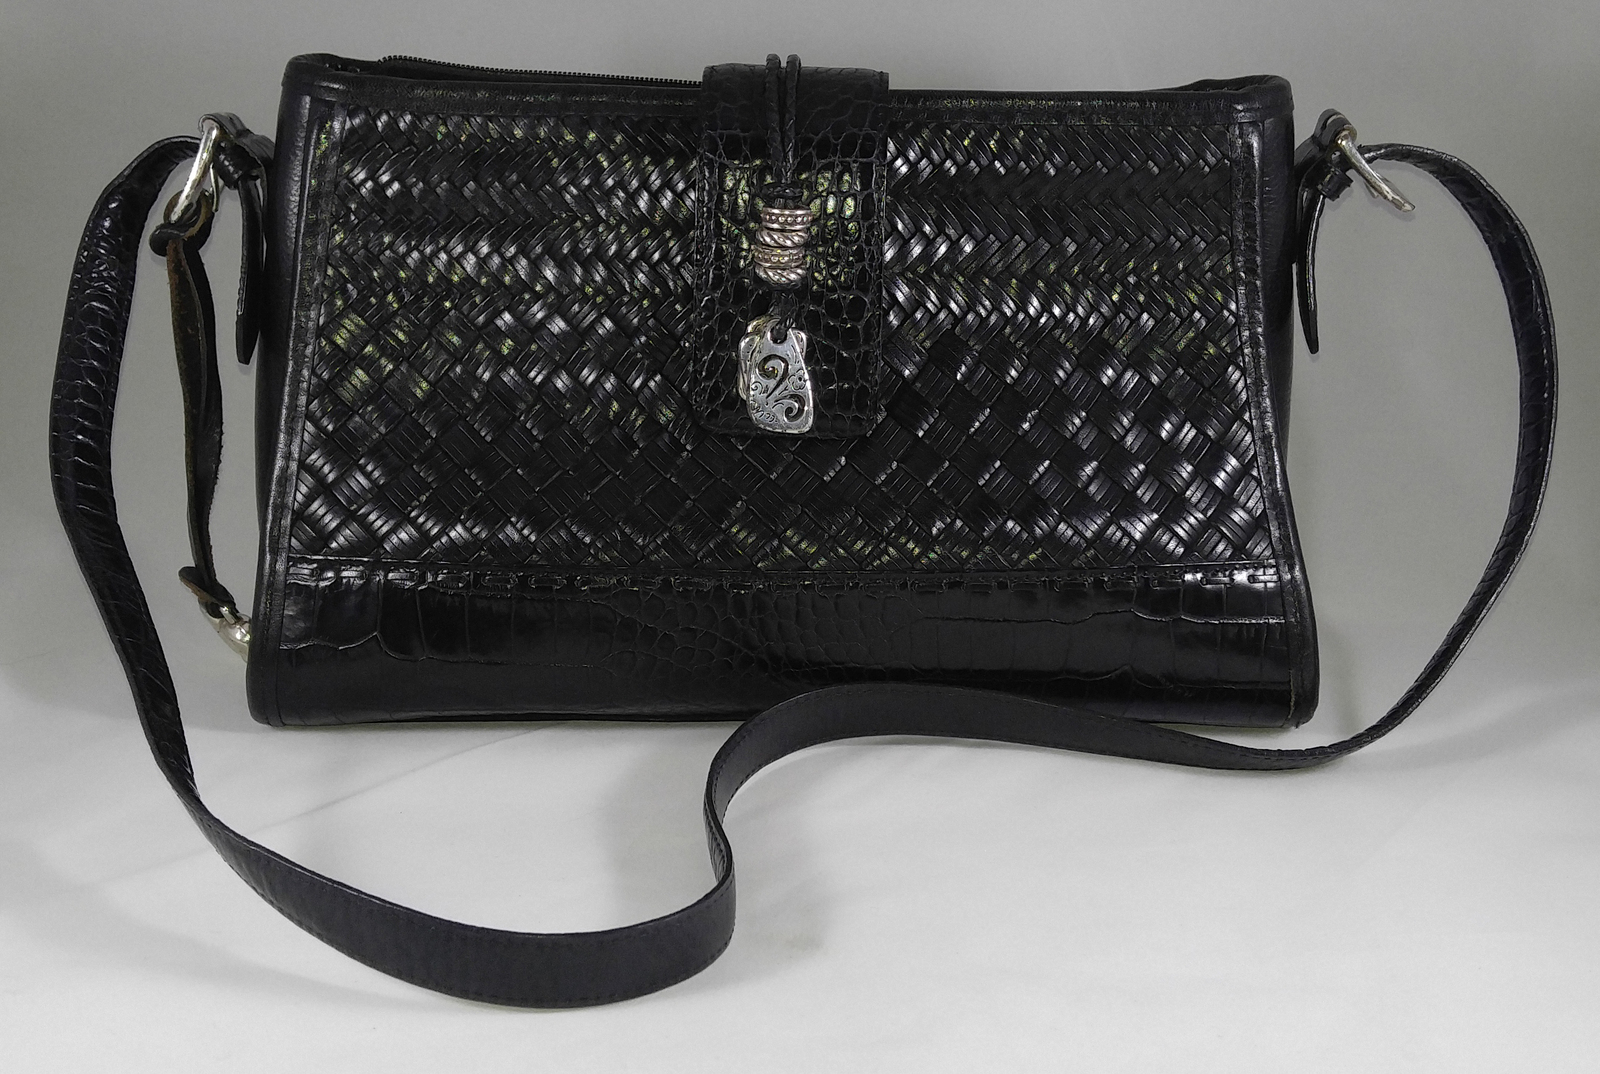 af4cca746d8831 Brighton Black Leather Weave Heart Charms Flap Cross Body Handbag Purse -  $79.99